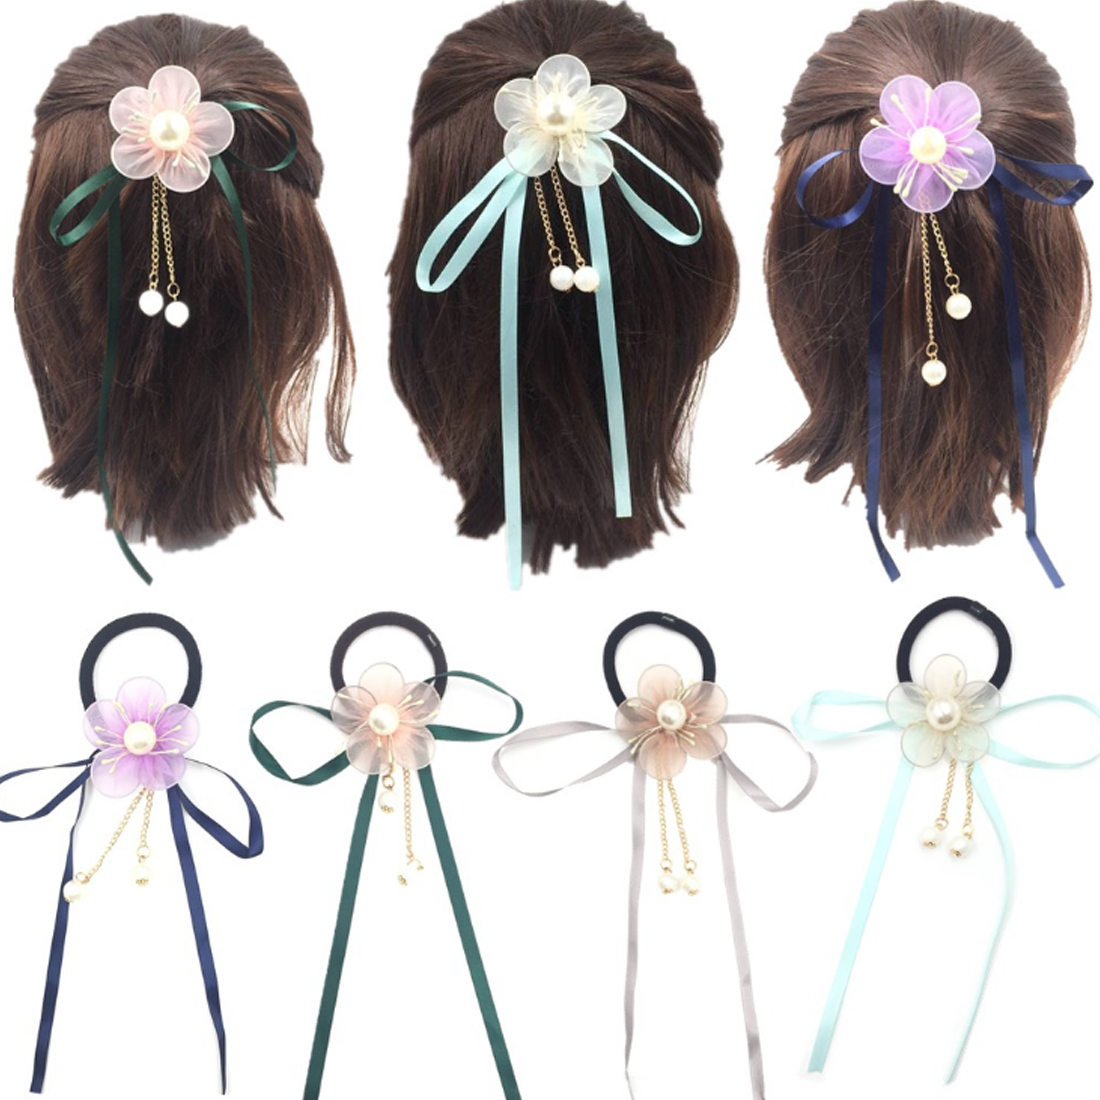 Men's Accessories Children Girl Women Ponytail Holder Band Floral Elastic Rubber Band Hair Ties Elegant And Sturdy Package